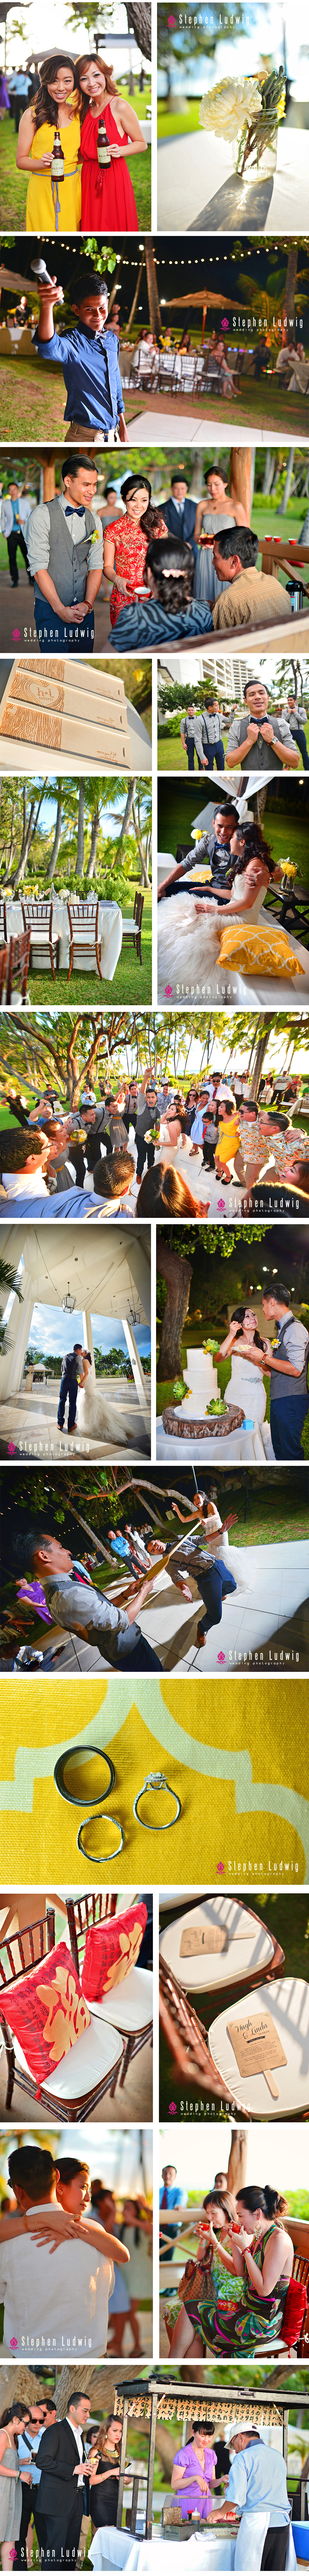 Hugh-and-Linda-Stephen-Ludwig-Hawaii-Wedding-Photography-5